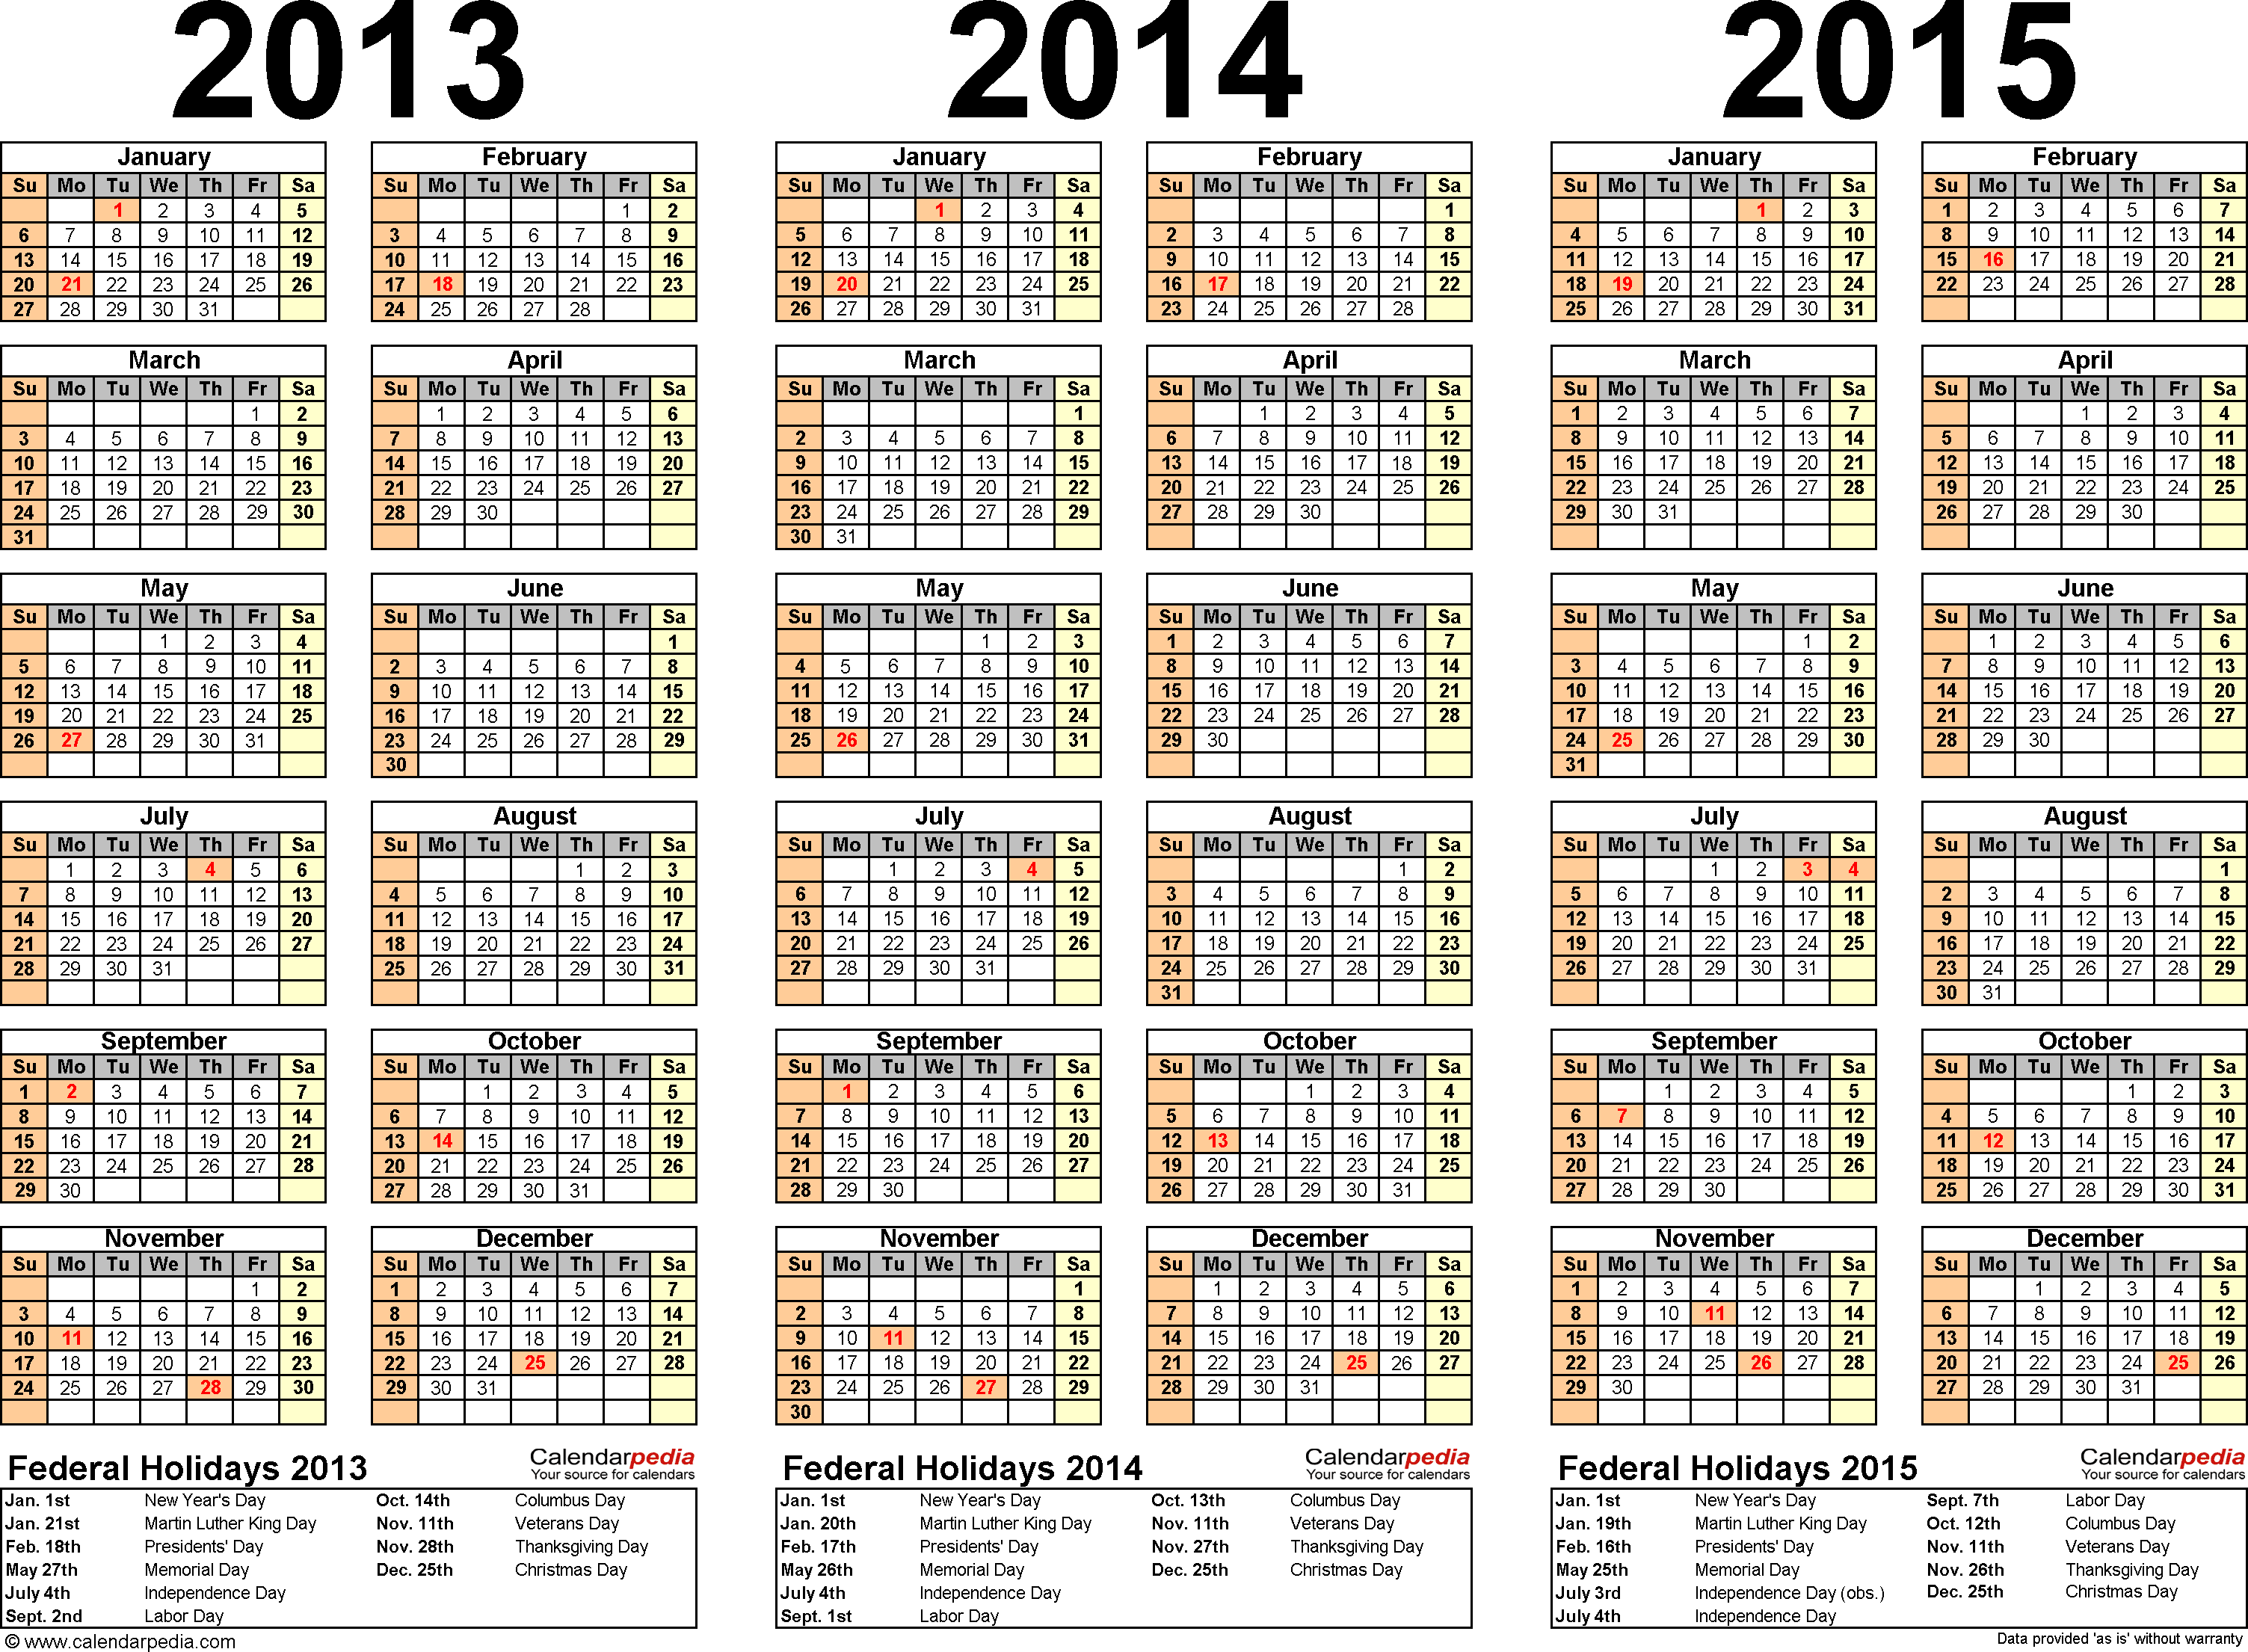 image about 3 Year Calendar Printable called 2013/2014/2015 calendar - 2 3-12 months printable PDF calendars